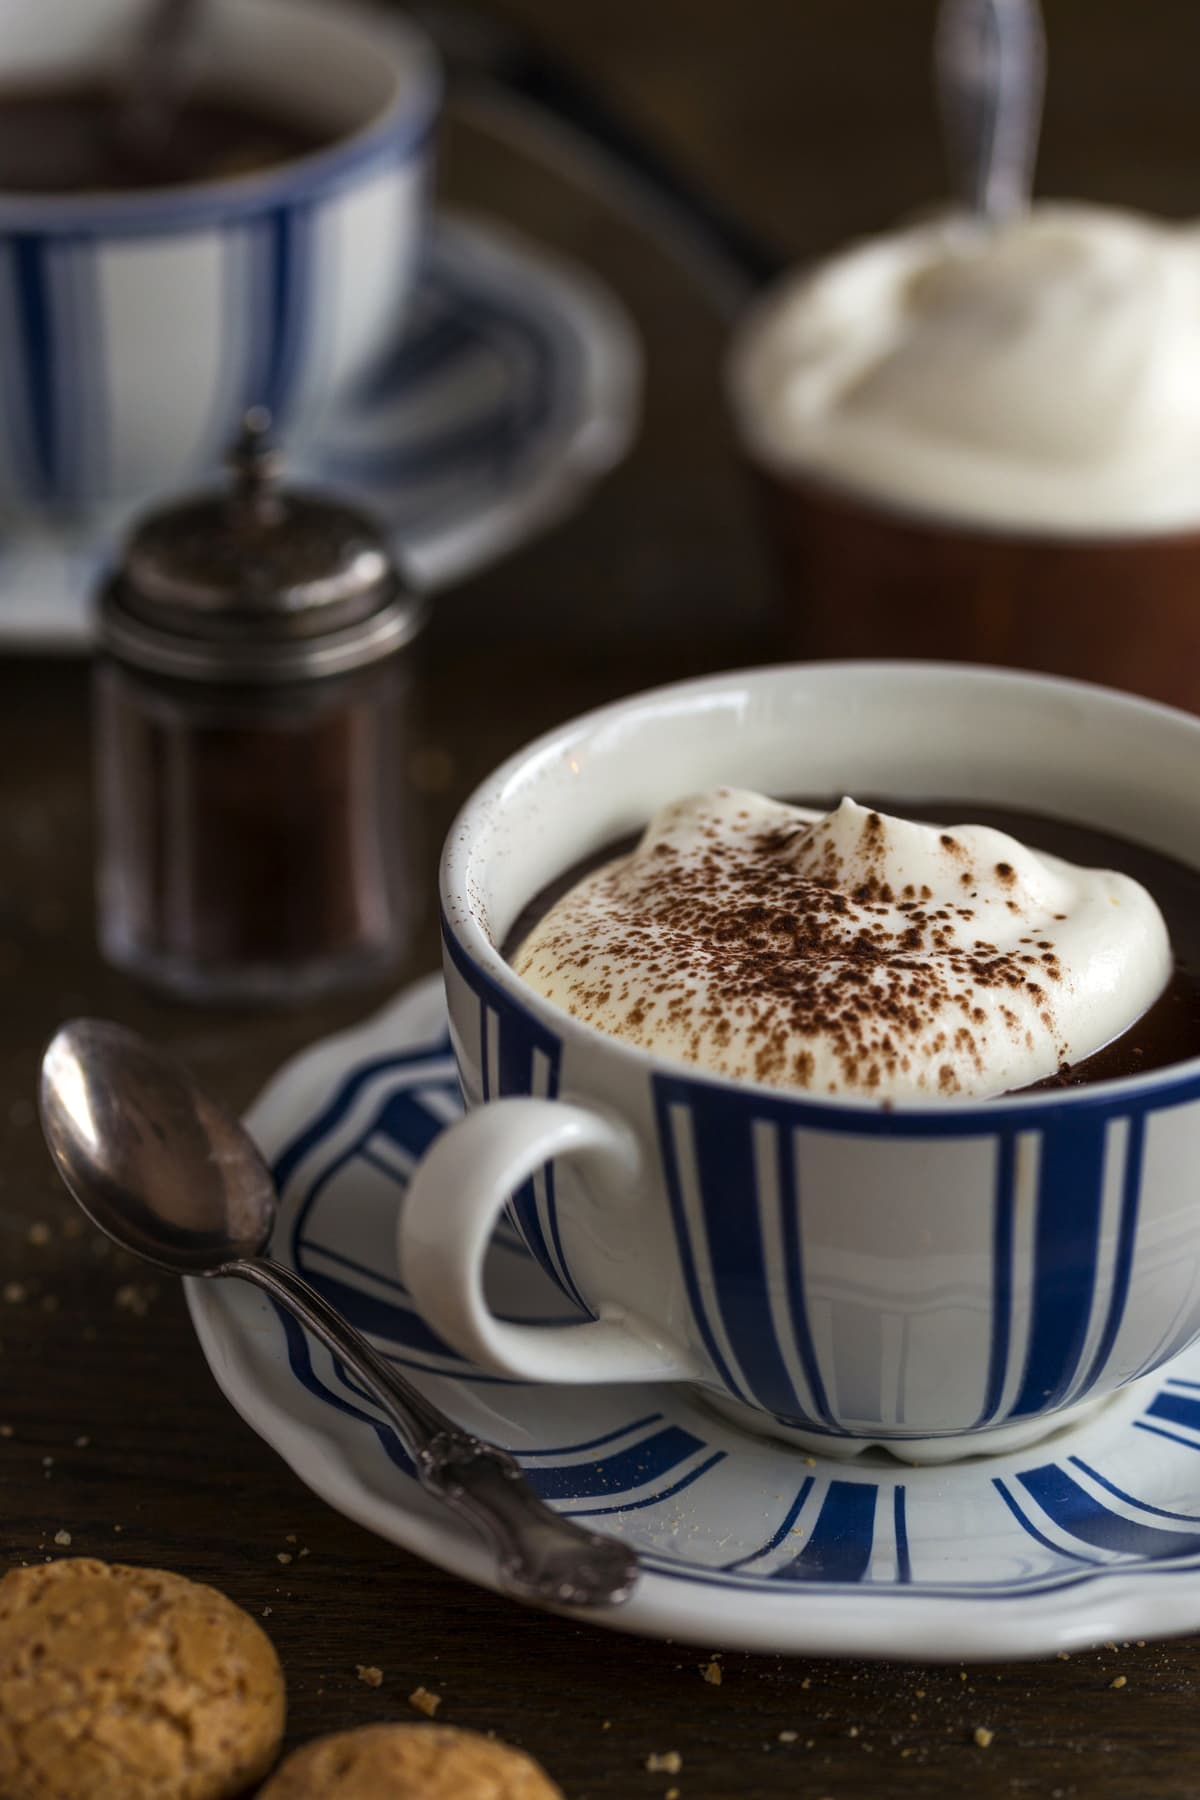 Thick hot chocolate with whipped cream and cocoa powder.